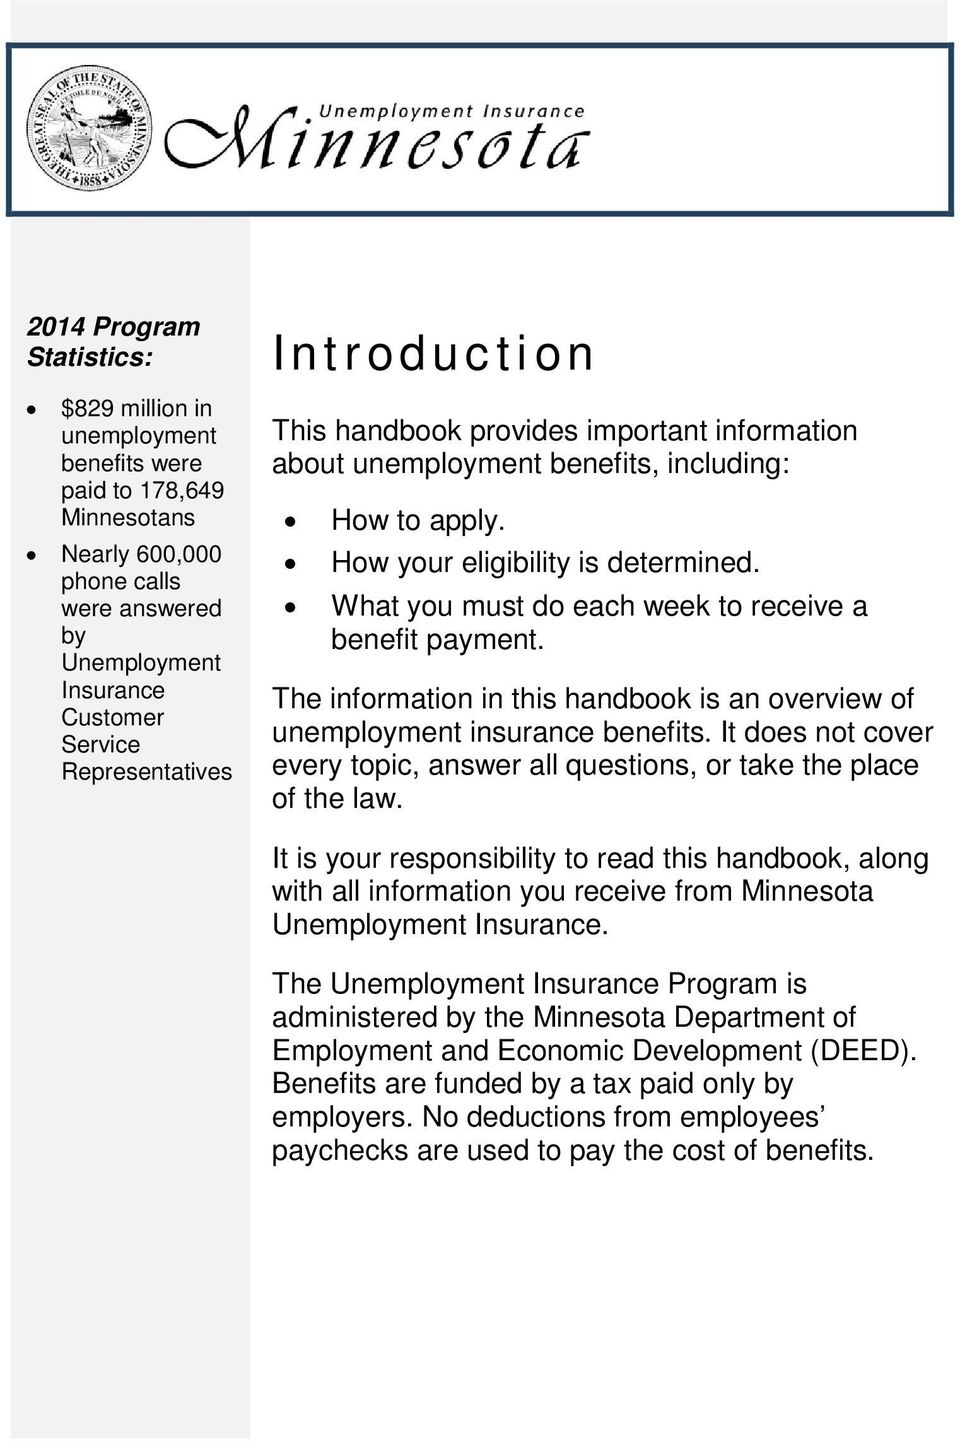 What you must do each week to receive a benefit payment. The information in this handbook is an overview of unemployment insurance benefits.